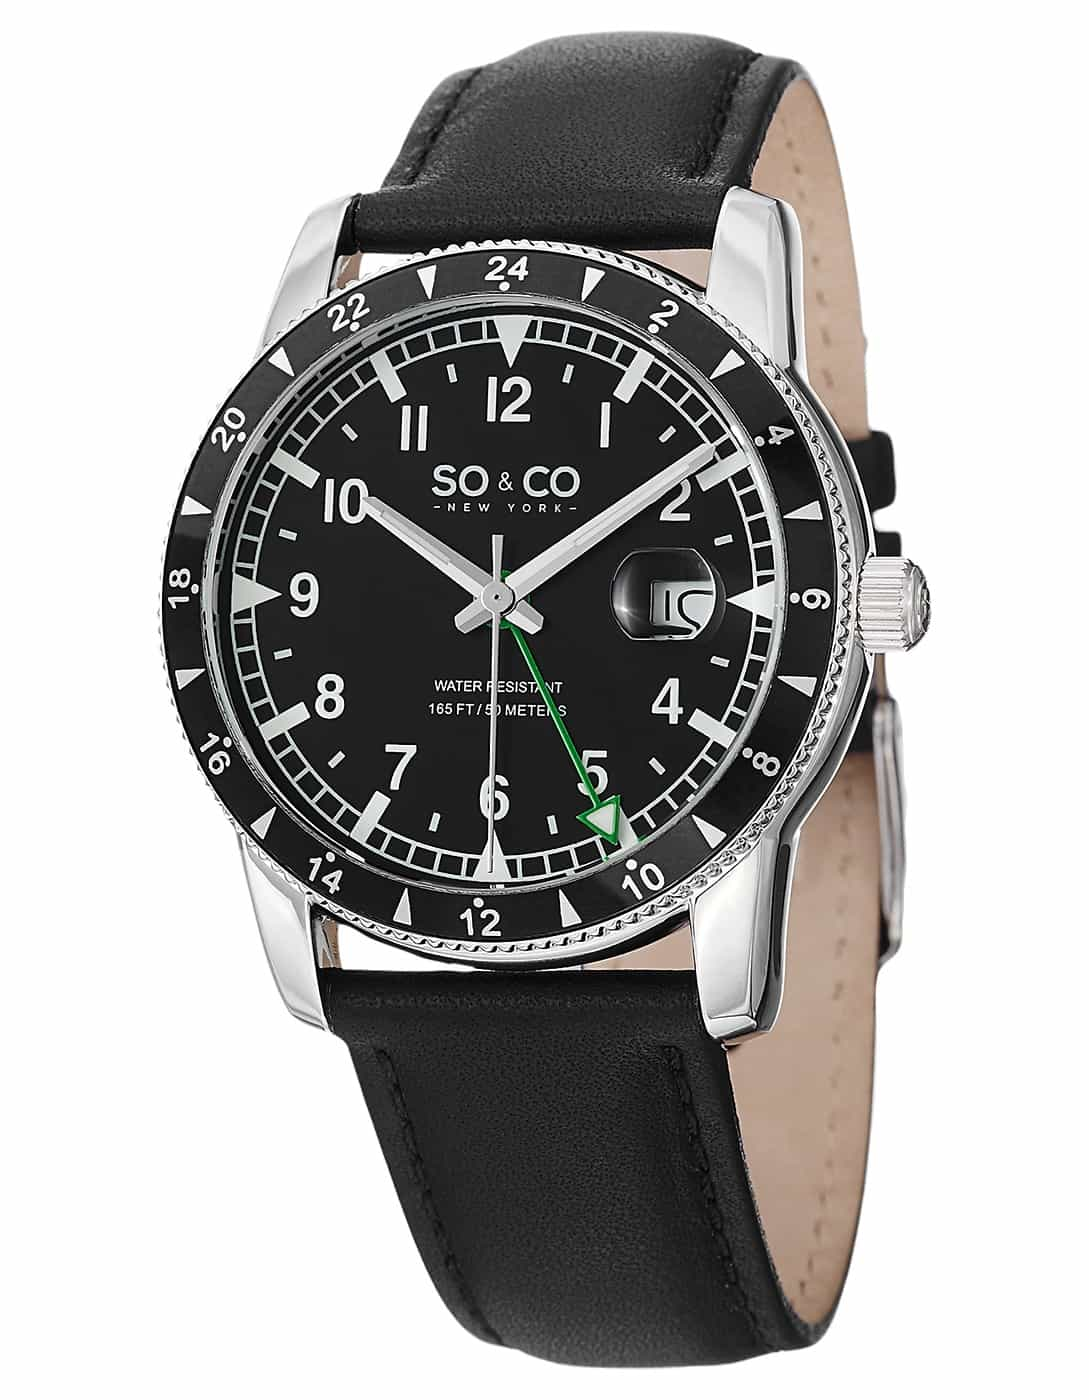 So & Co GMT Watches